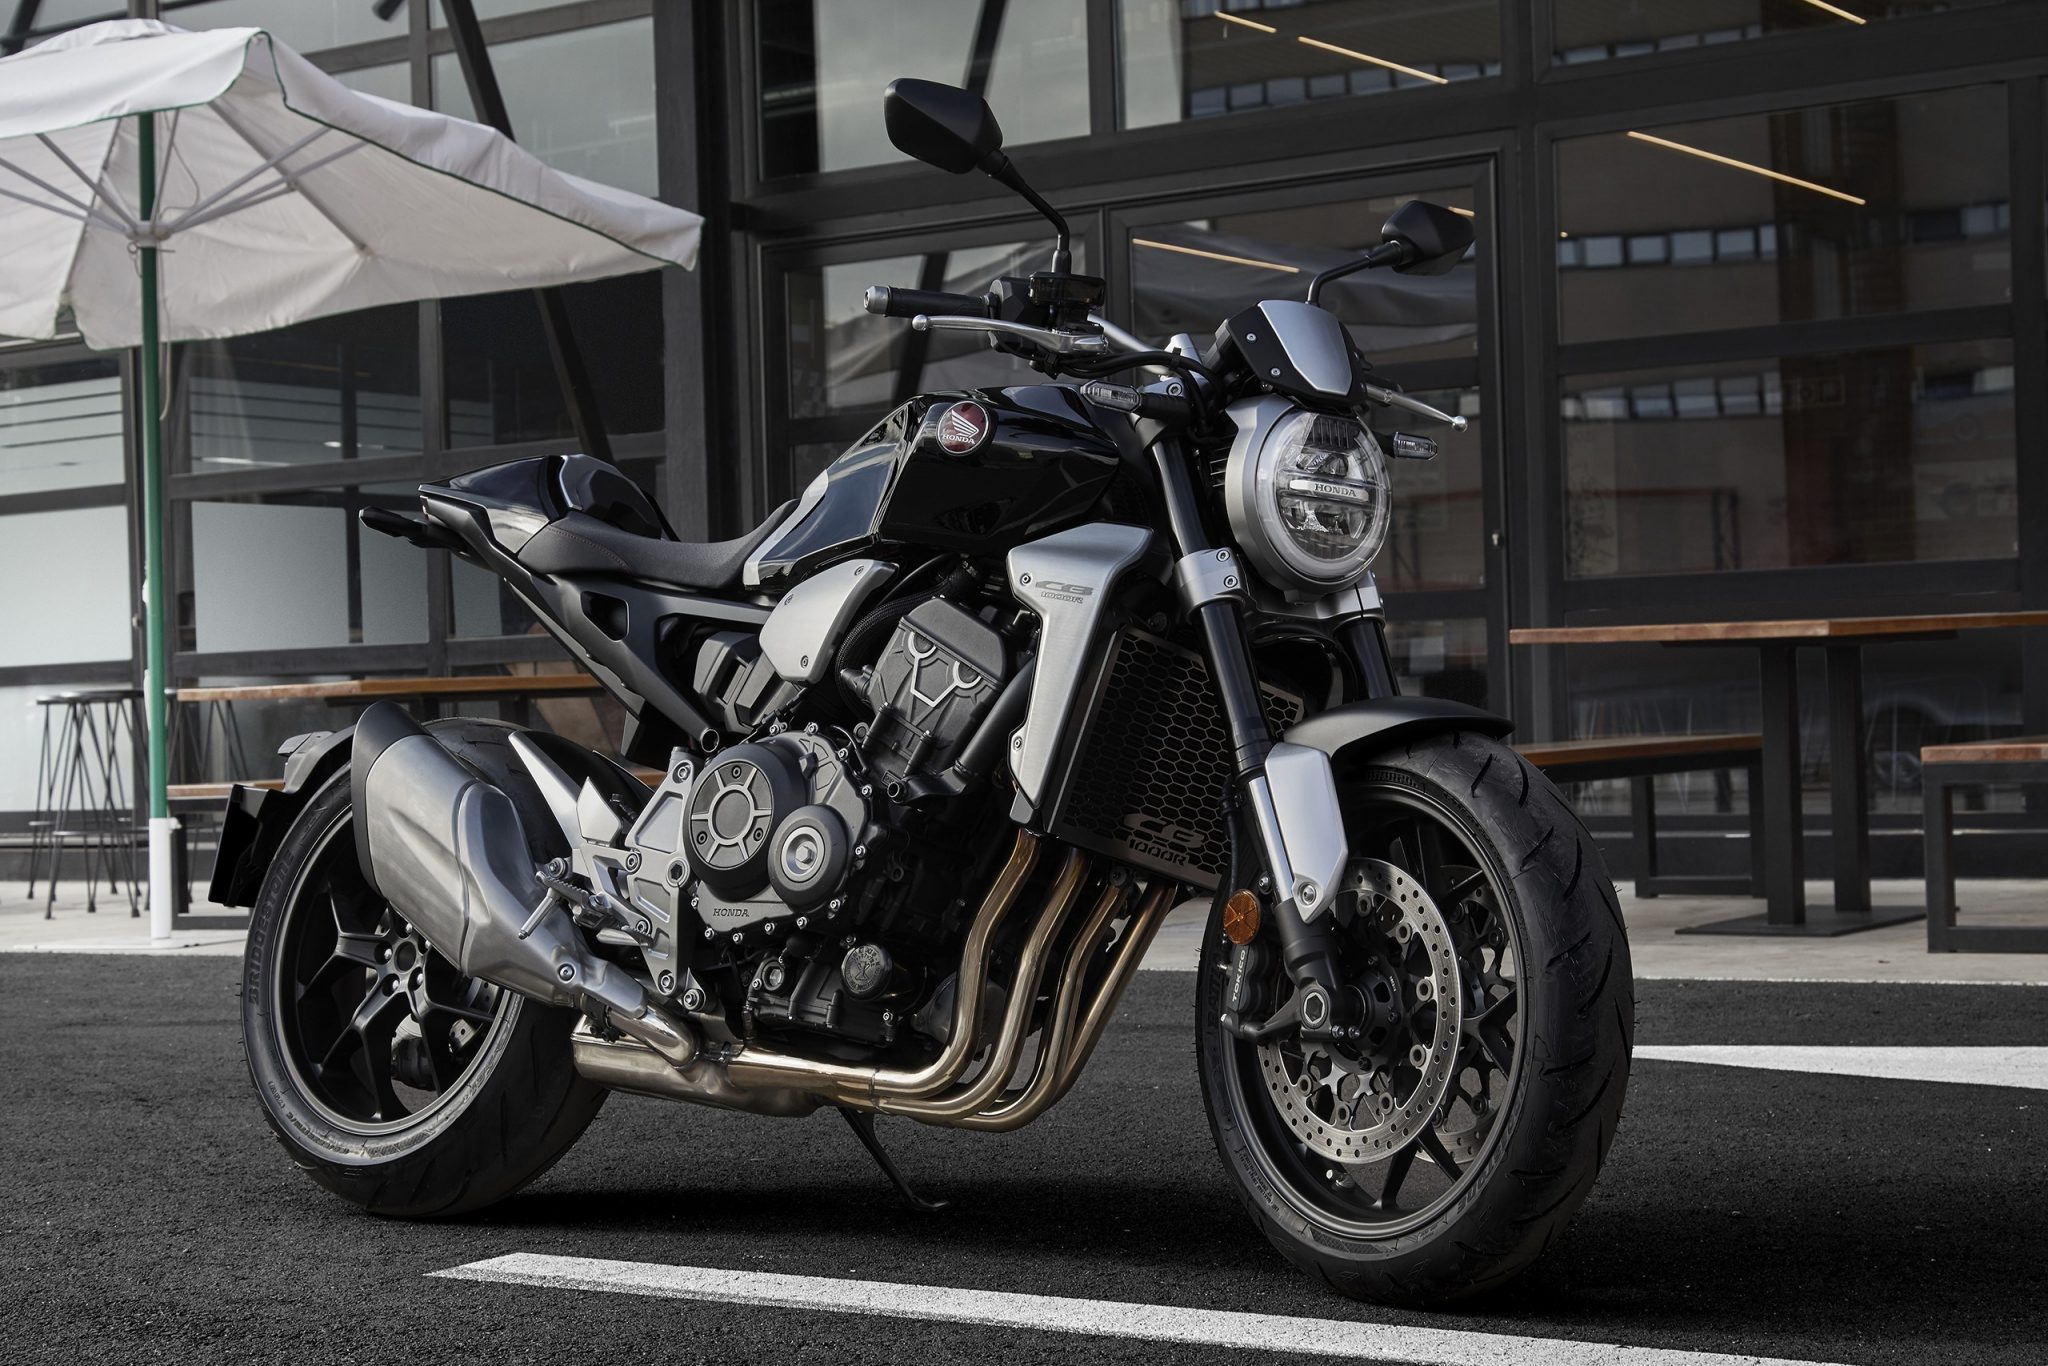 Honda previews the CB1000R and confirms price of Africa Twin and X-ADV